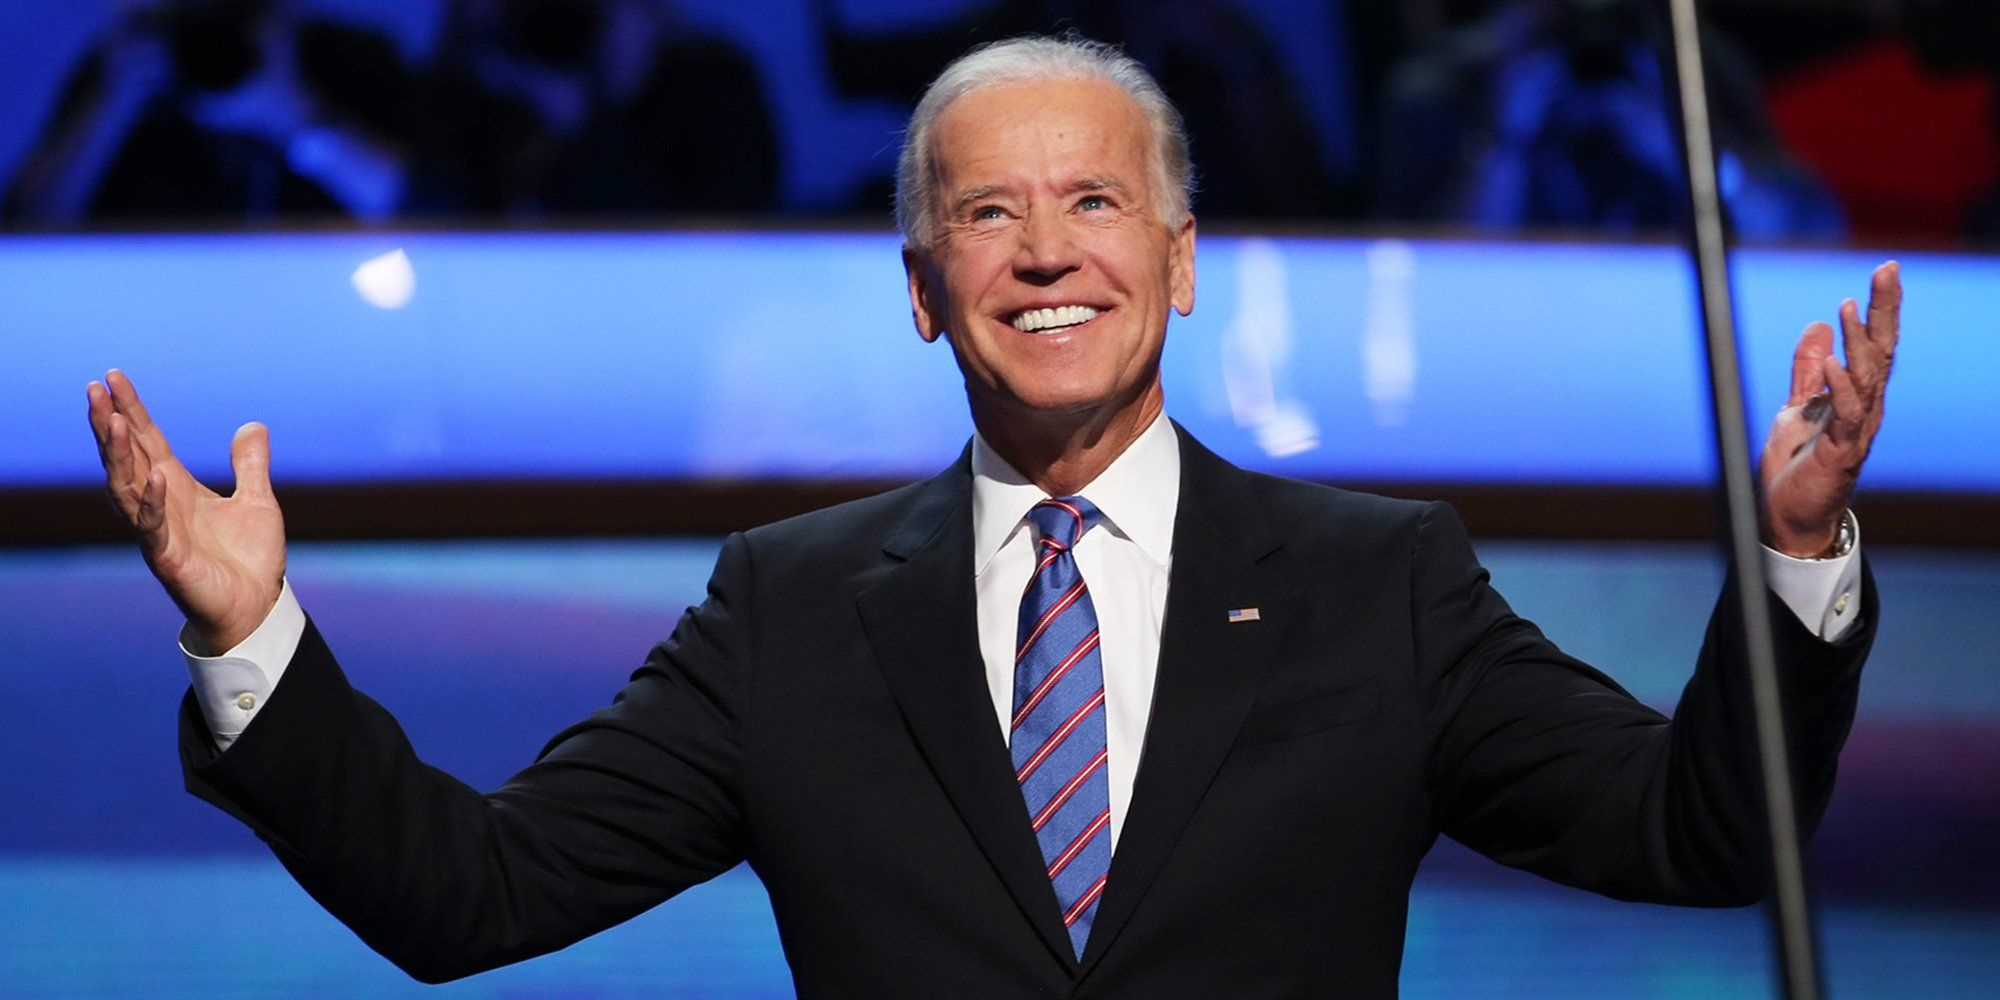 Joe Biden All But Confirms That Stacey Abrams Could Be His Vice